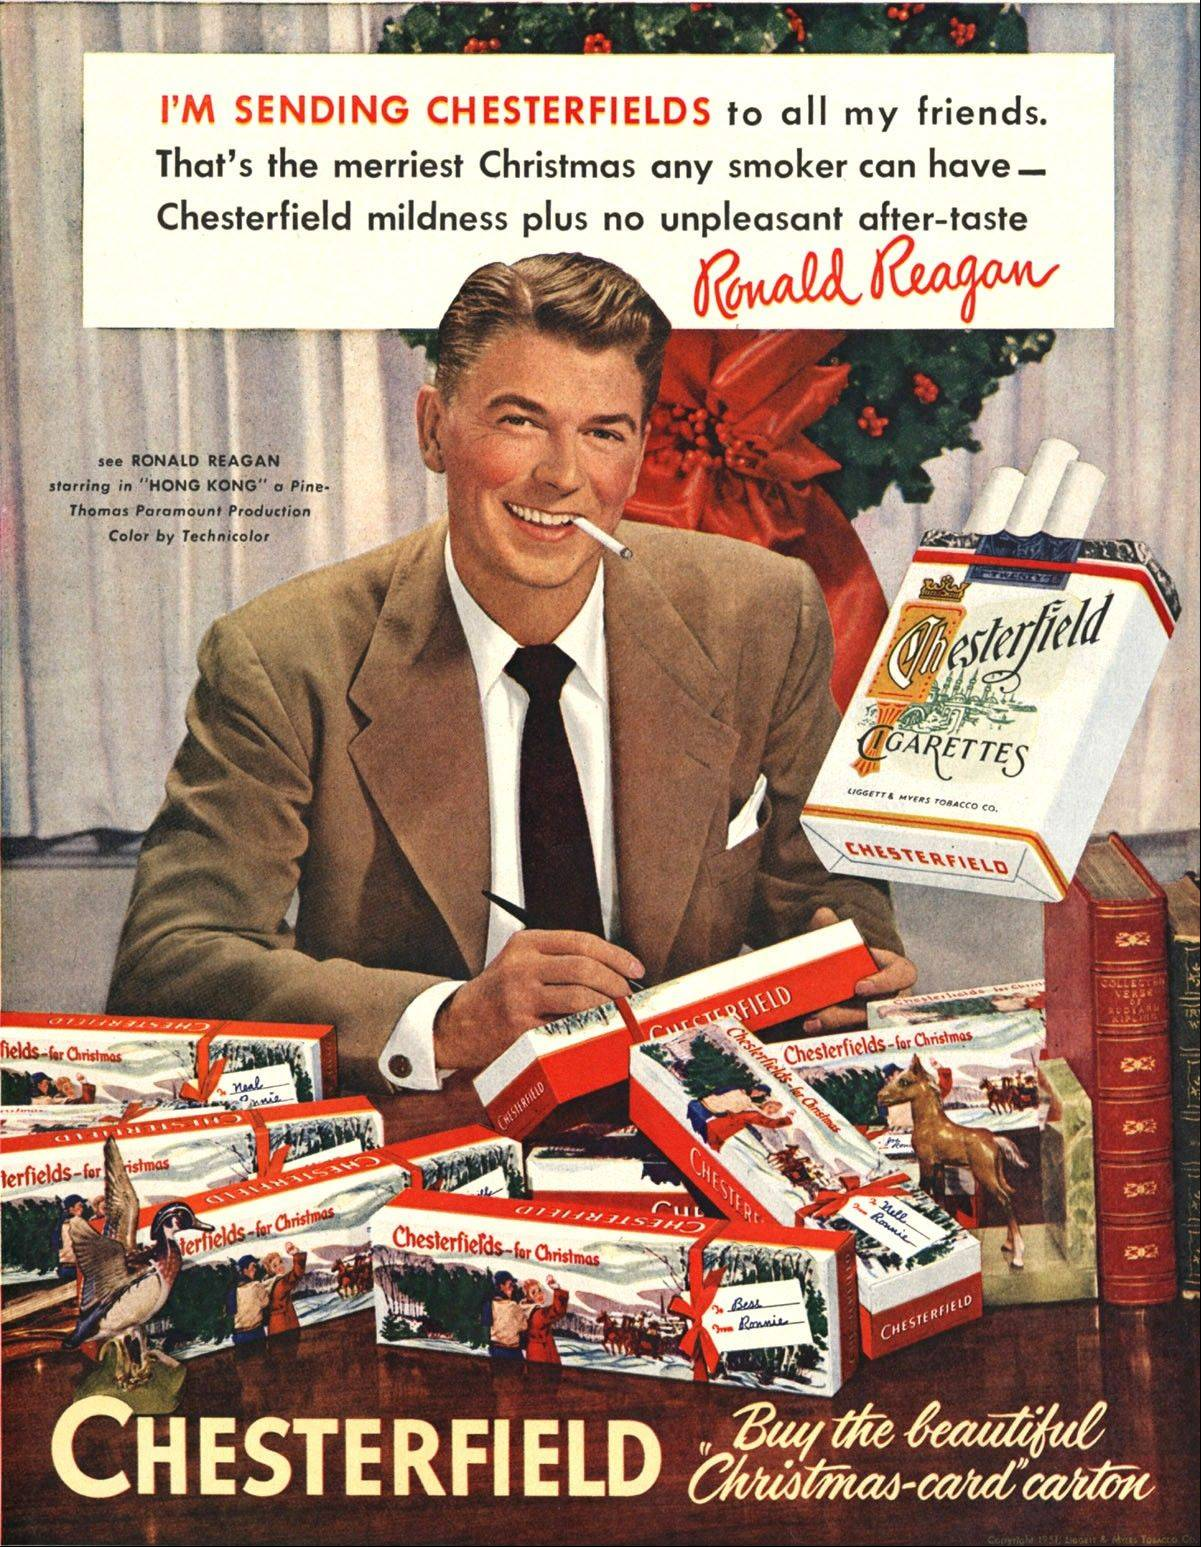 A 1949 Chesterfield cigarette advertisement featuring future President Ronald Reagan.